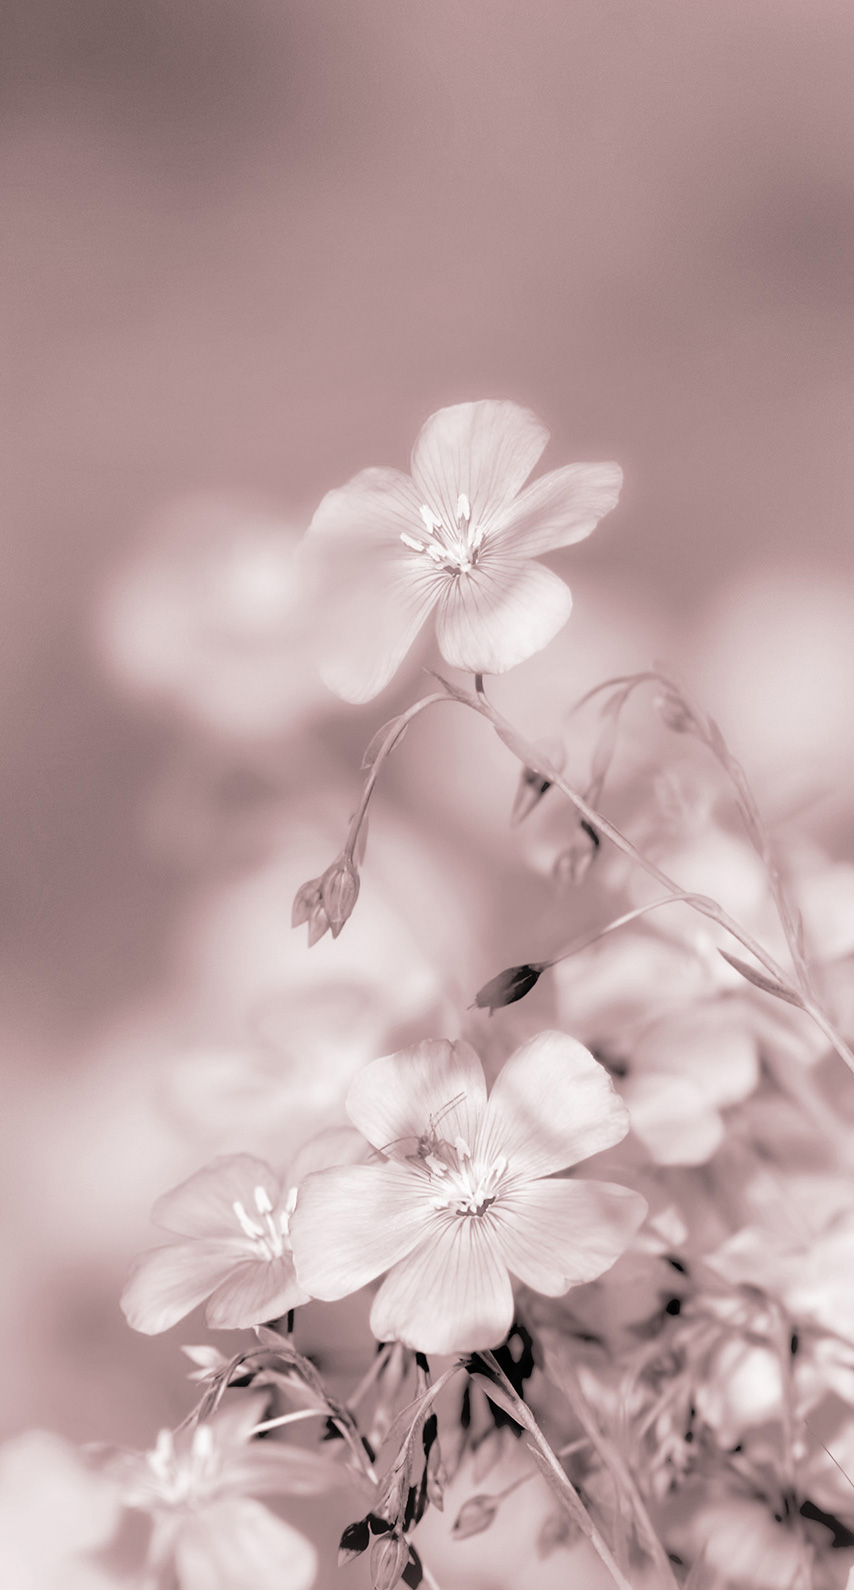 cherry, blur, no person, fair weather, flora, garden, blooming, petal, closeup, season